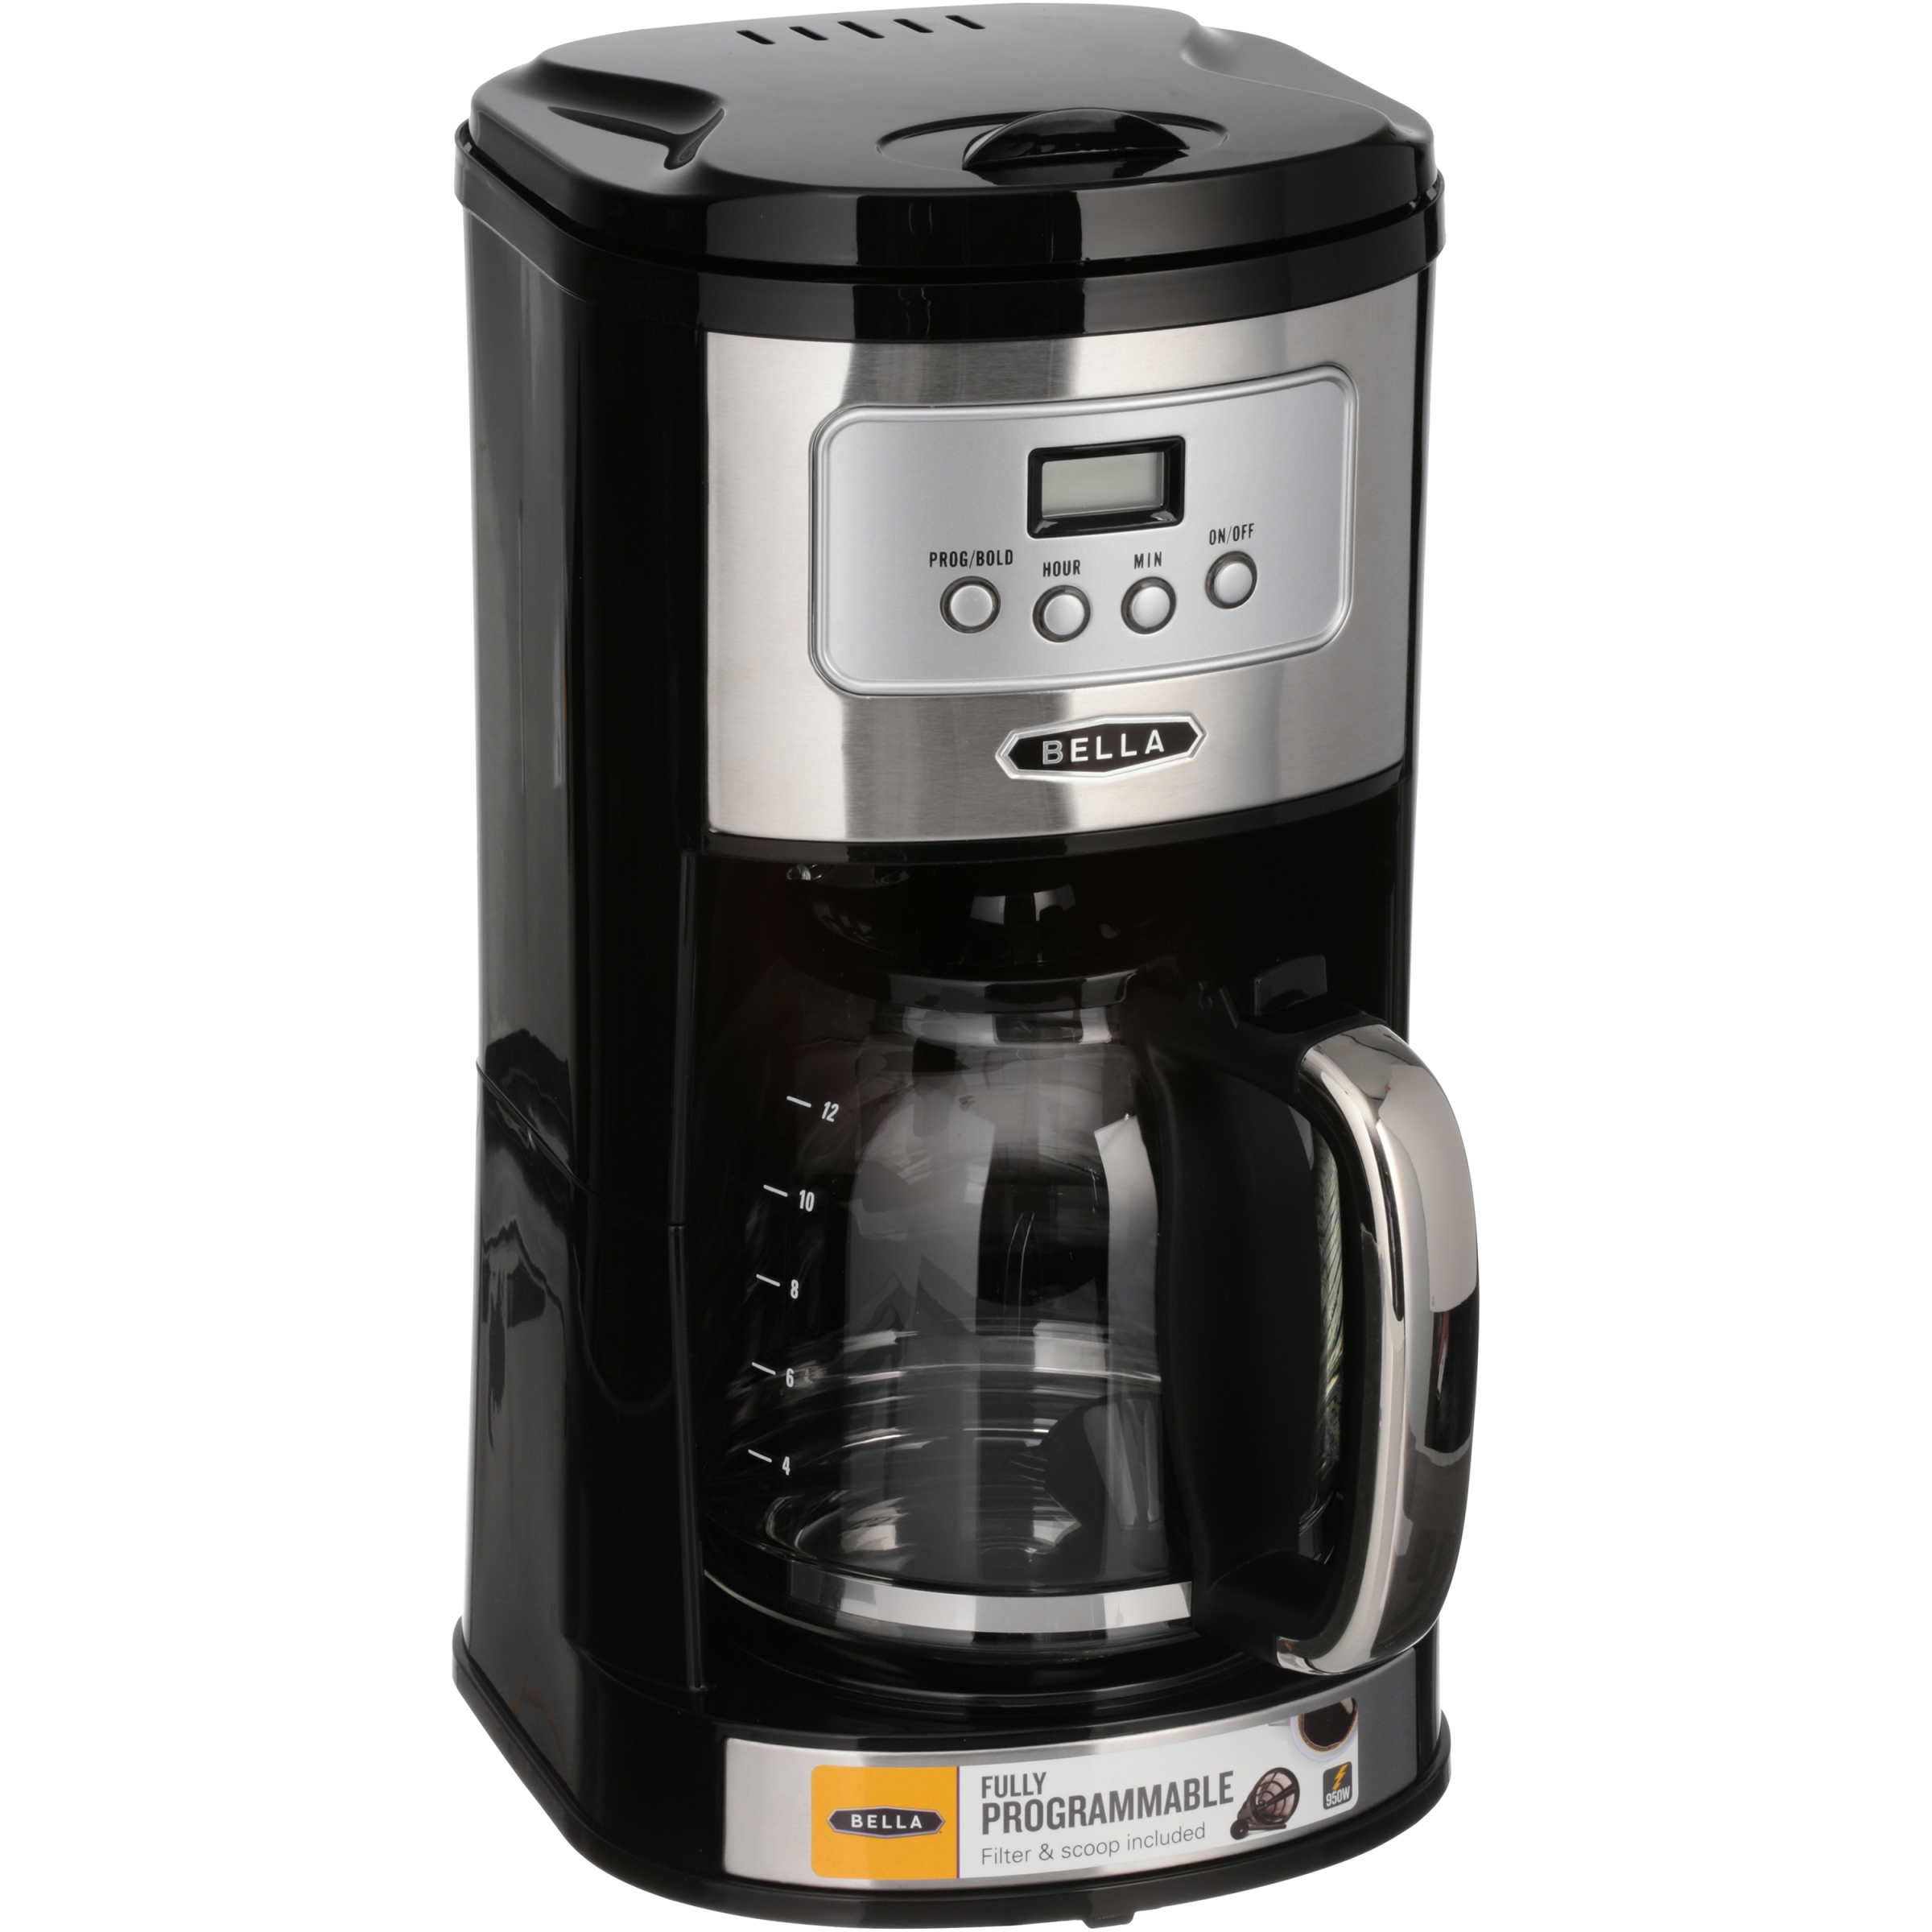 Bella® 12-Cup Programmable Coffee Maker Box